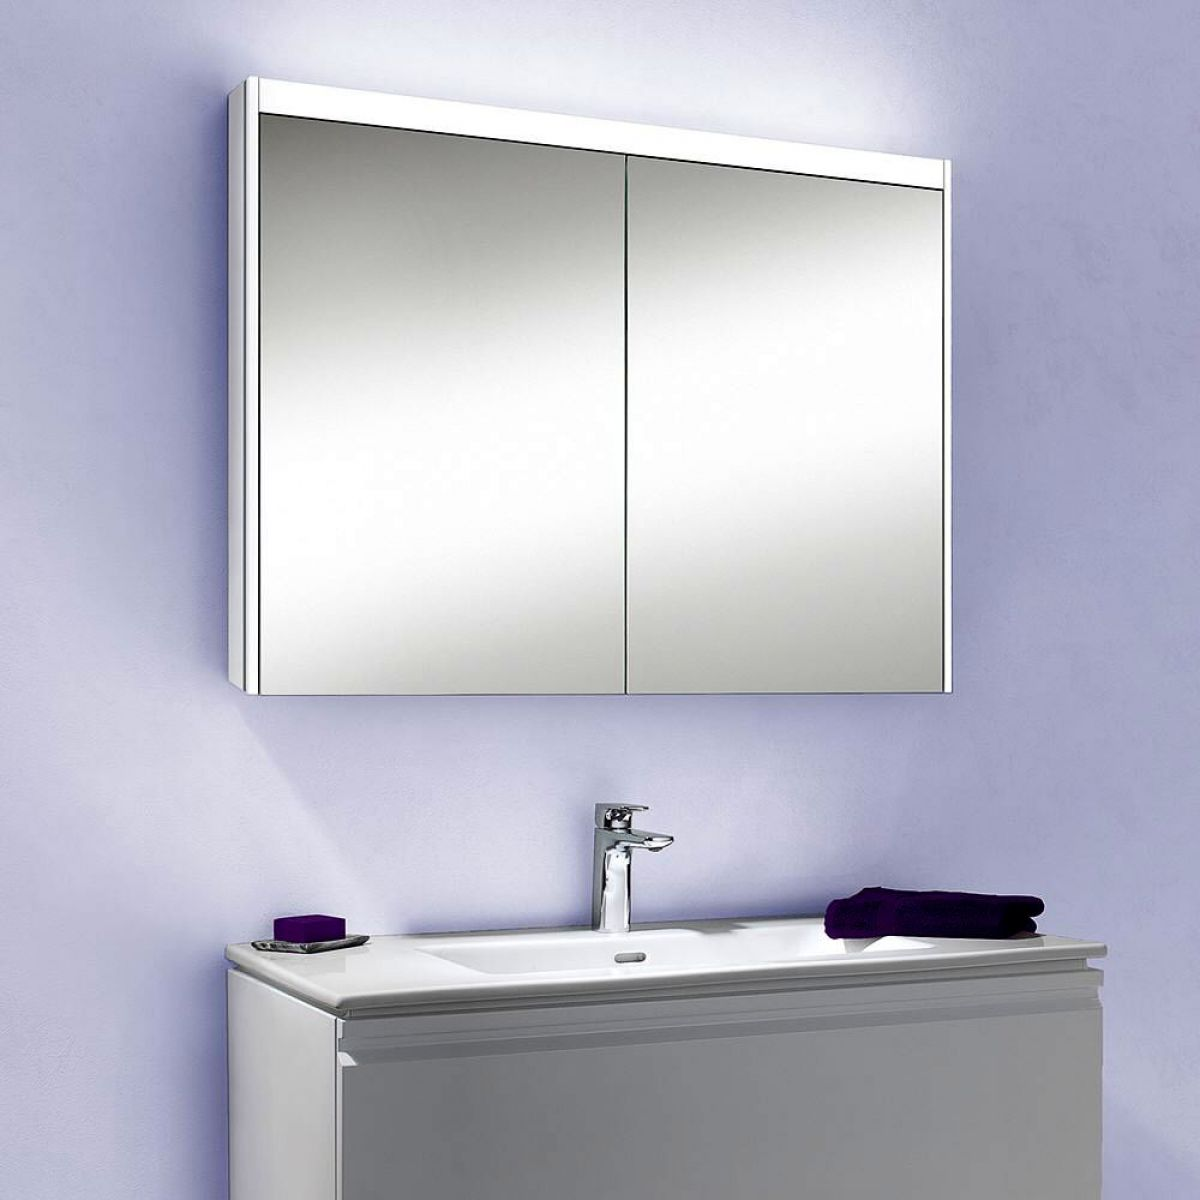 Schneider O-LINE LED Mirror Cabinets 12cms : UK Bathrooms